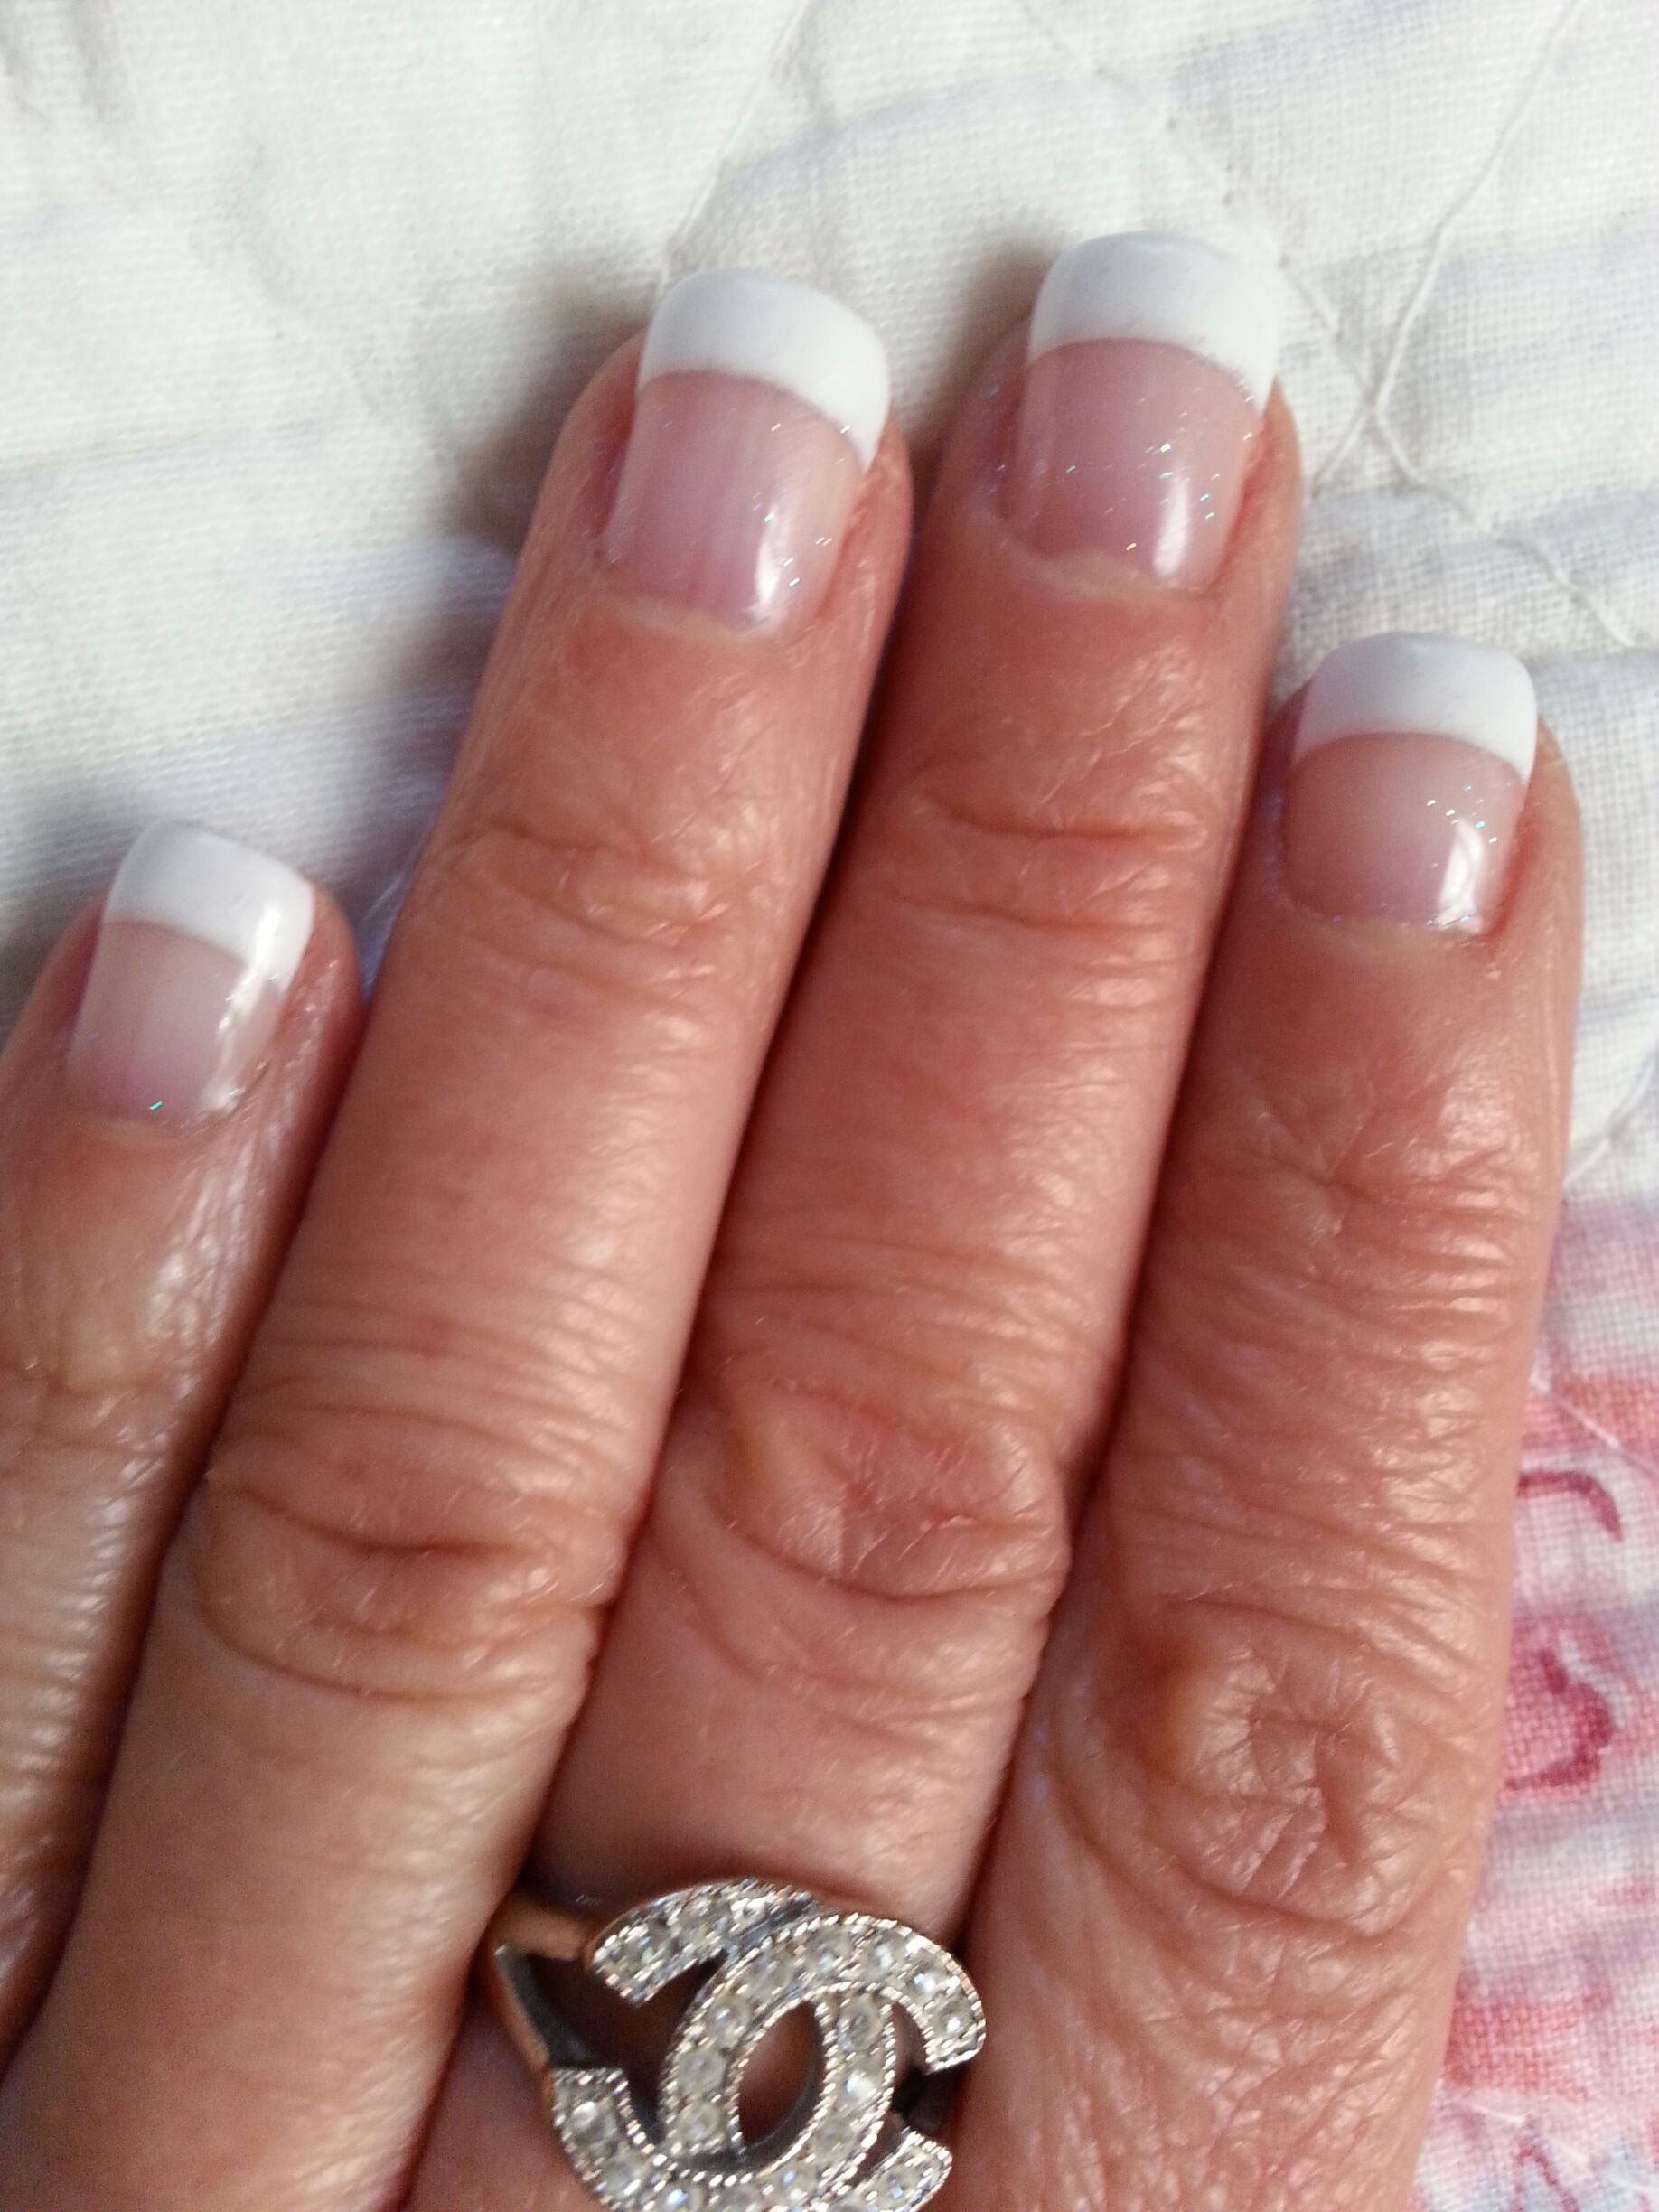 Nails - Short, gel french manicure.Clear with a bit of sparkle. A ...